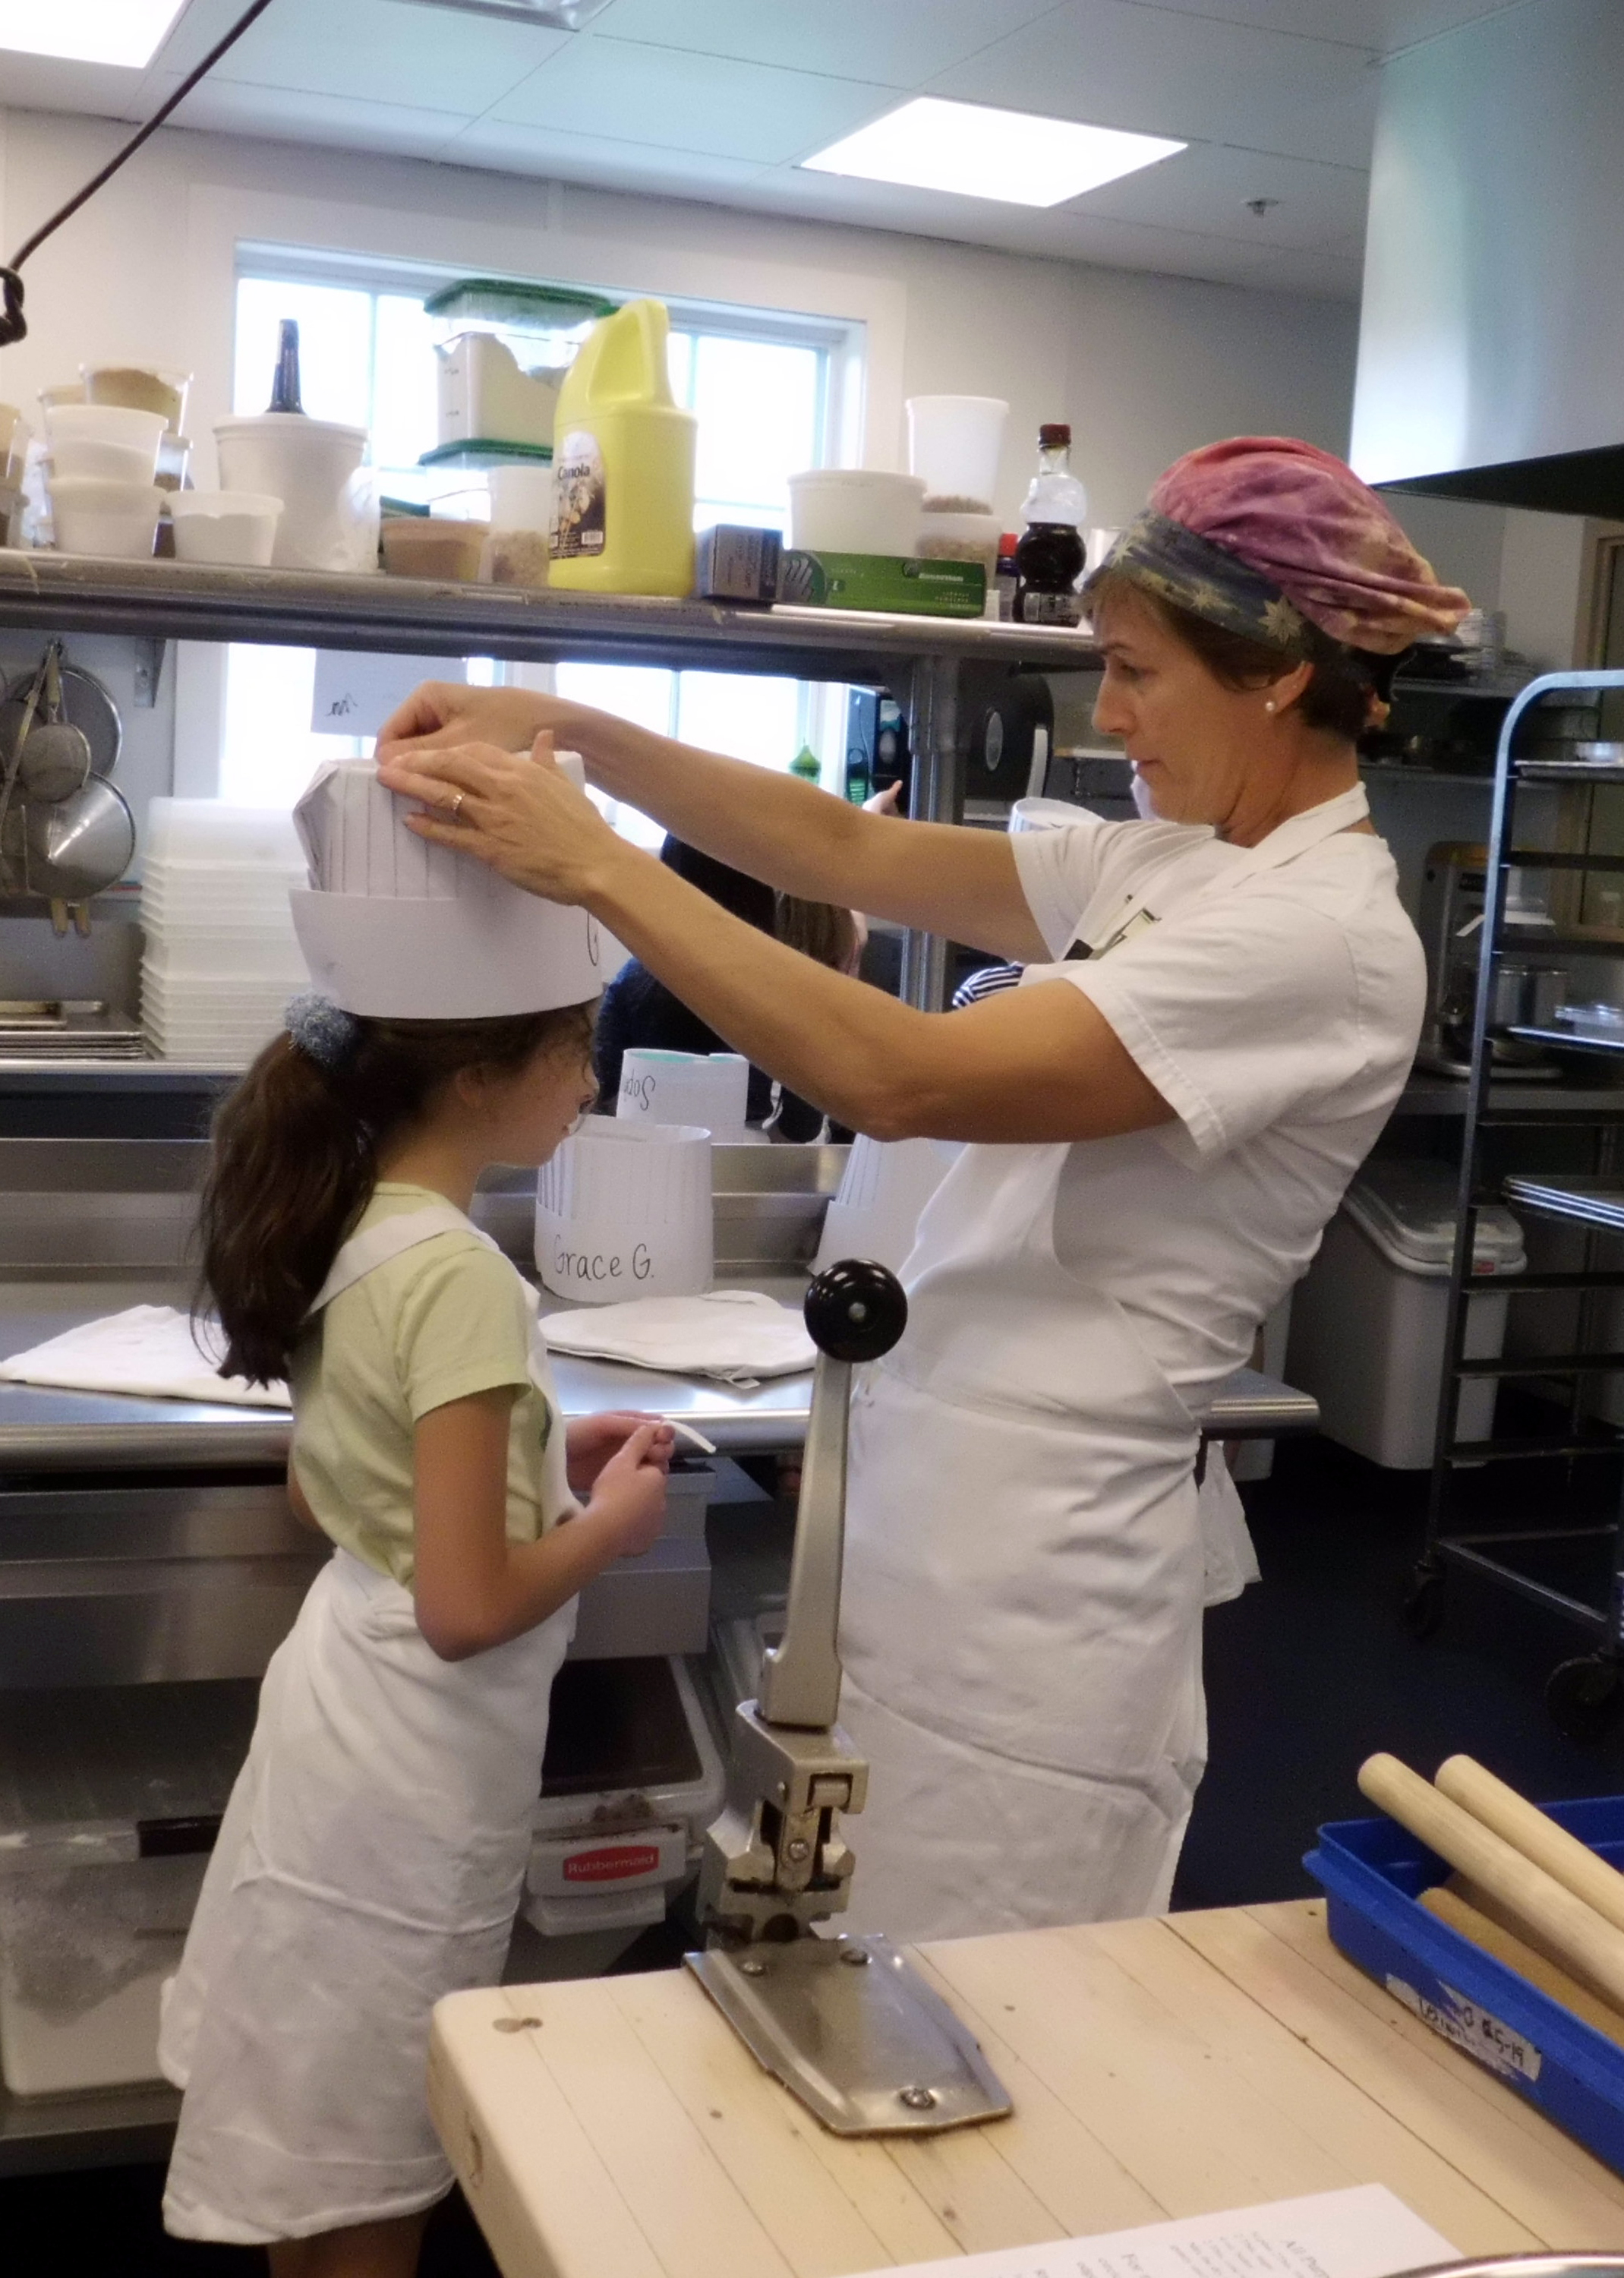 Jennifer VerrillFaddoul prepared a student for the cooking class. Photo by Anne Cushman.